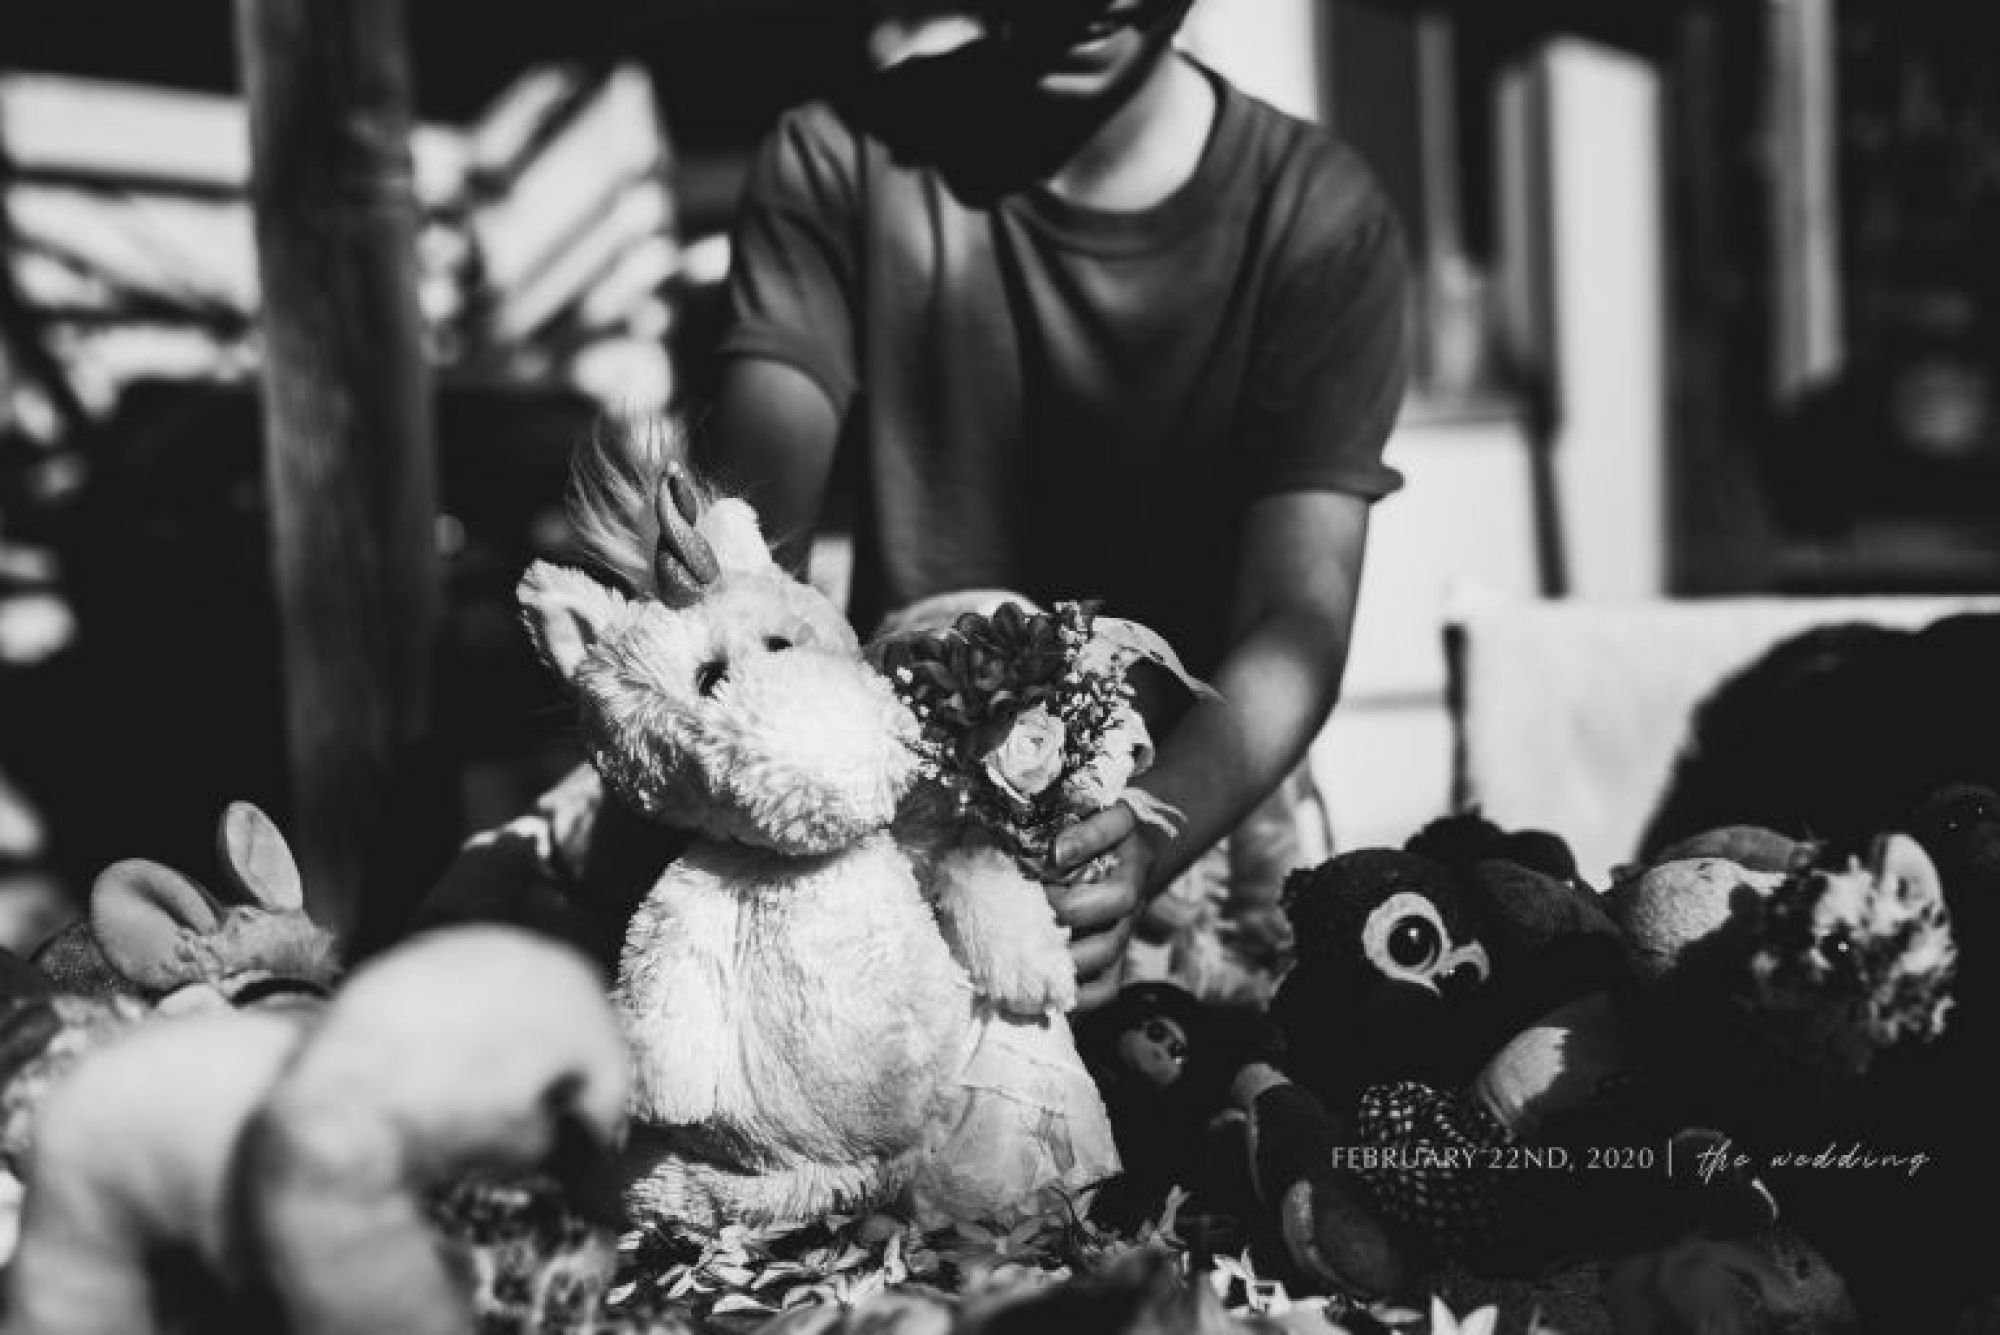 Black and white photo of stuffed animal in a wedding